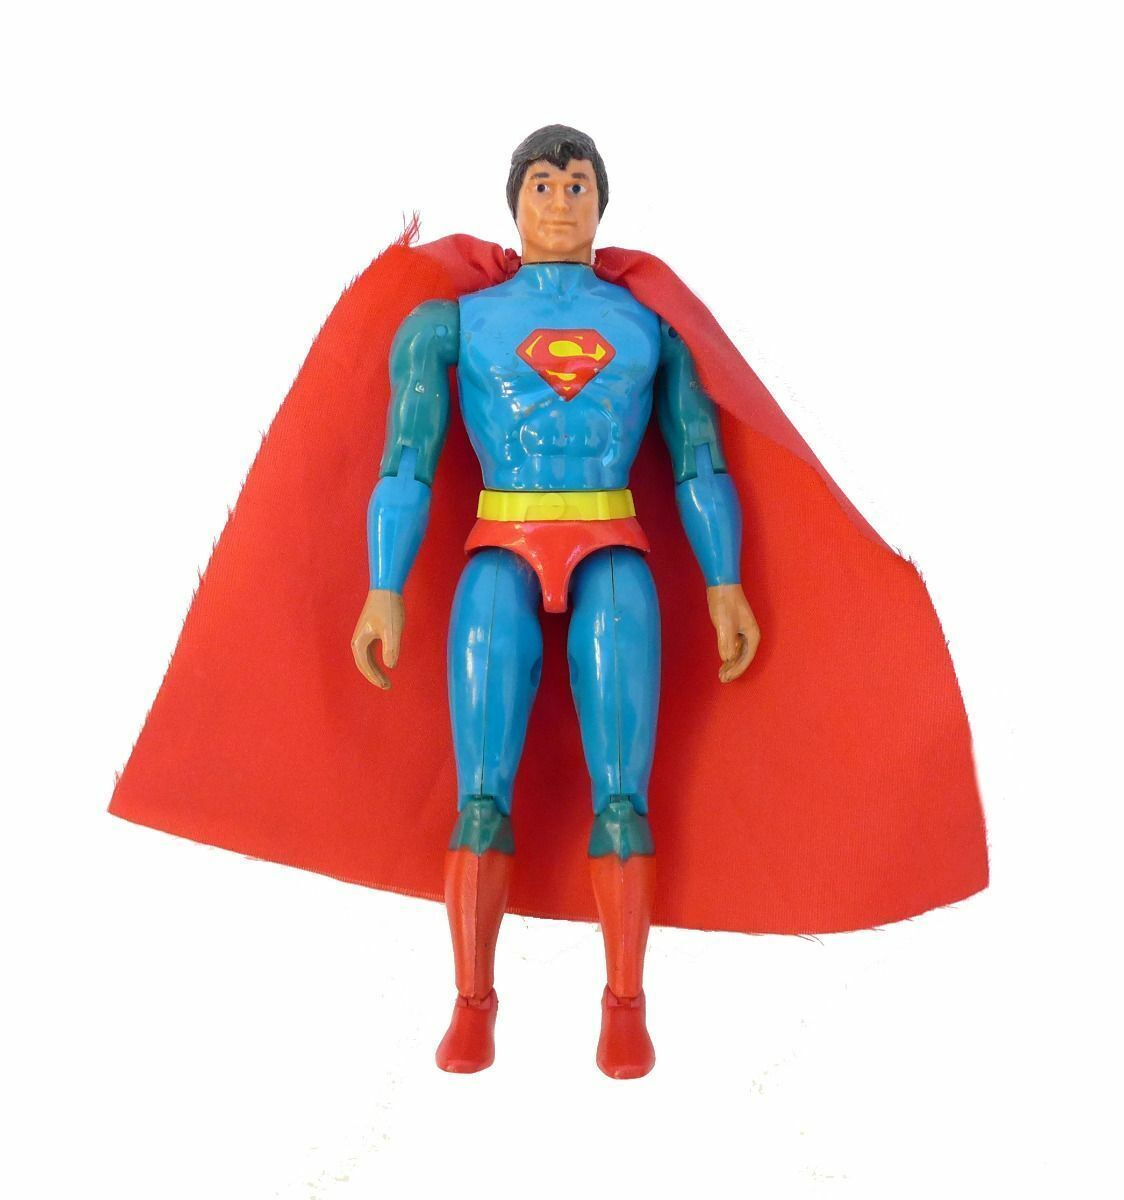 súperman Mego 1979 súperheroes Acción Figuras die cast in metal and plastic 15 c